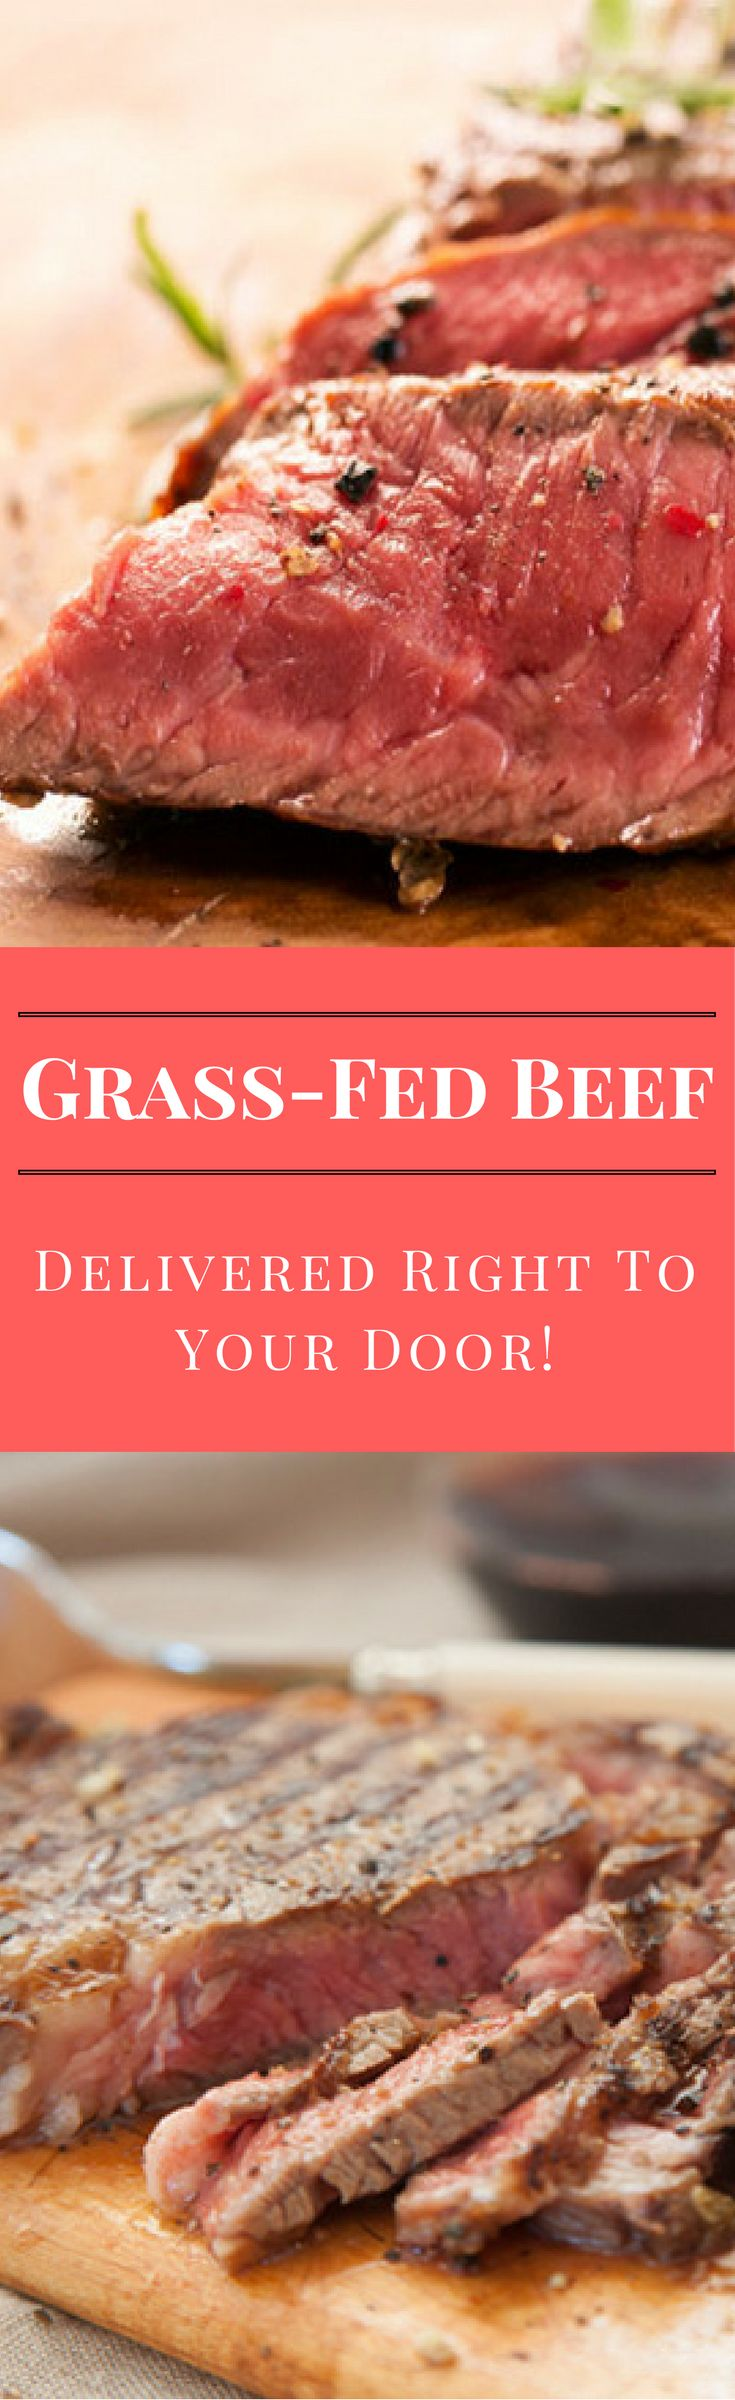 Exclusively grass-fed, organic beef delivered right to your door! Click visit to view our Savor Summer products!